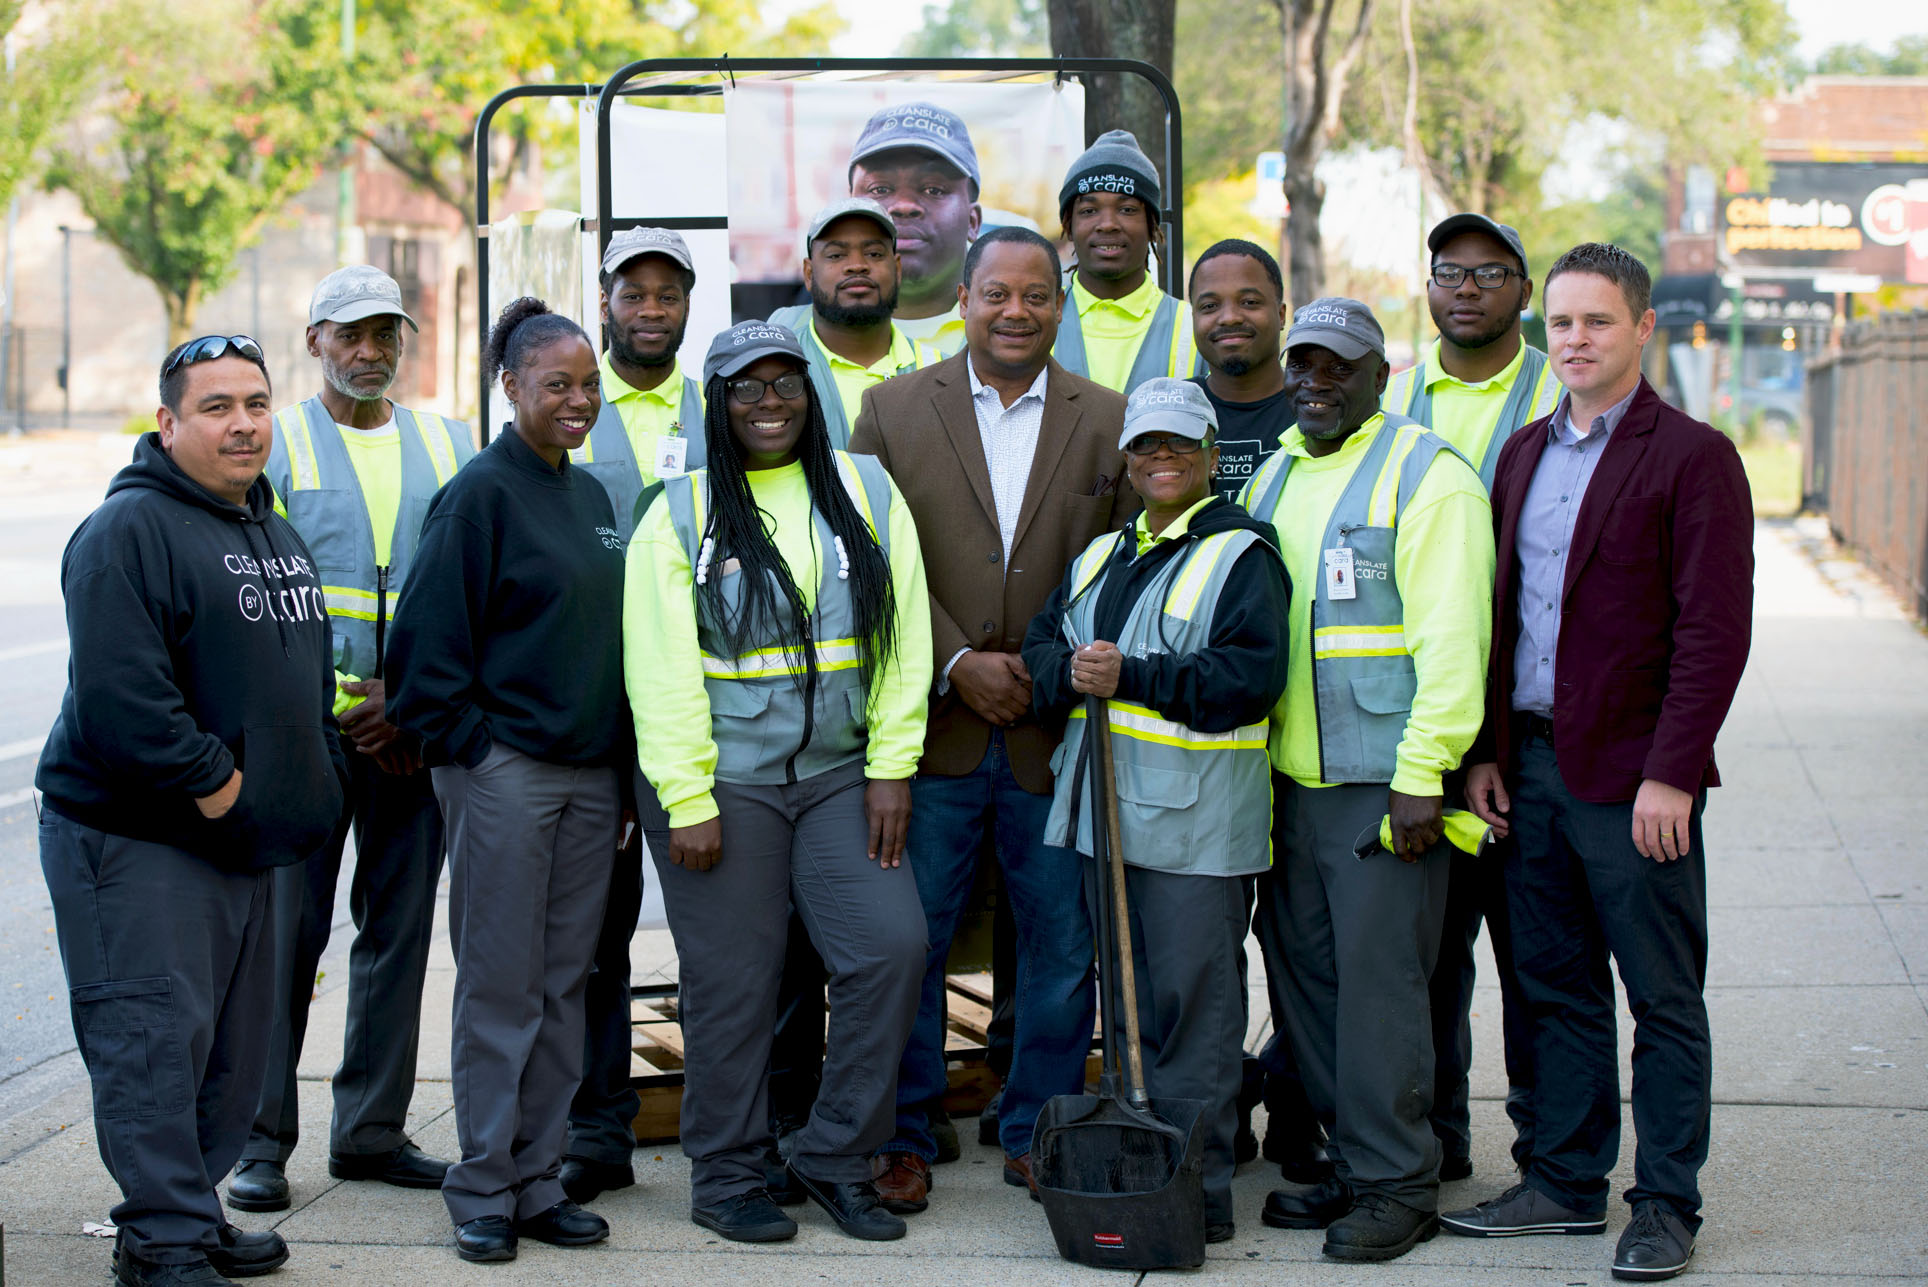 Supported by SCORE JOBS fund Cleanslate expands services to 6th Ward